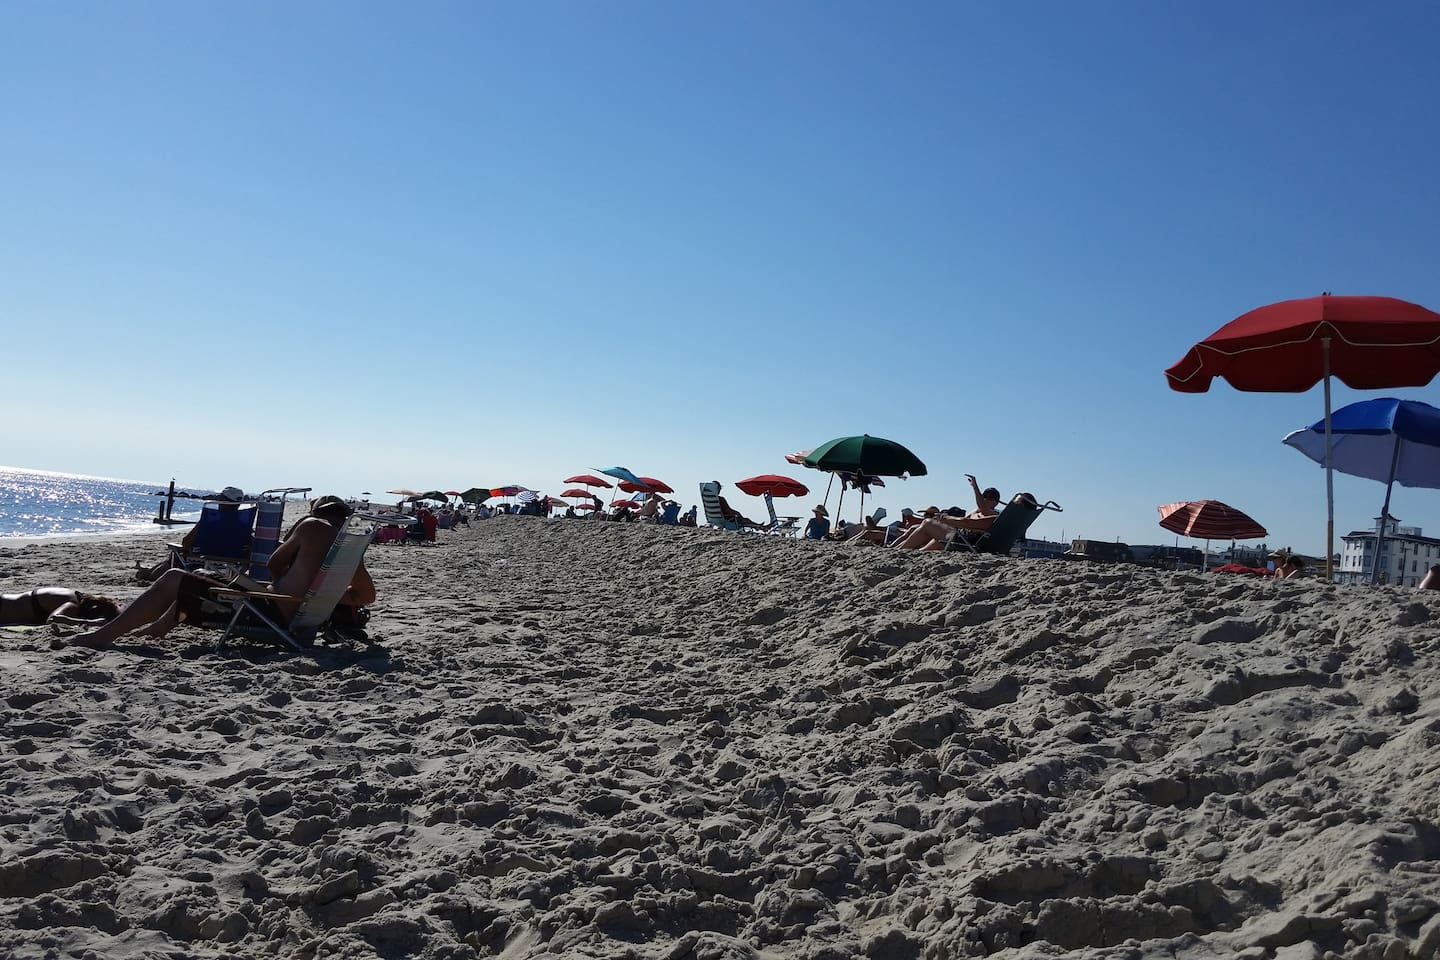 Spend your day at the landmark Cape May's beach half a block away from the bungalow